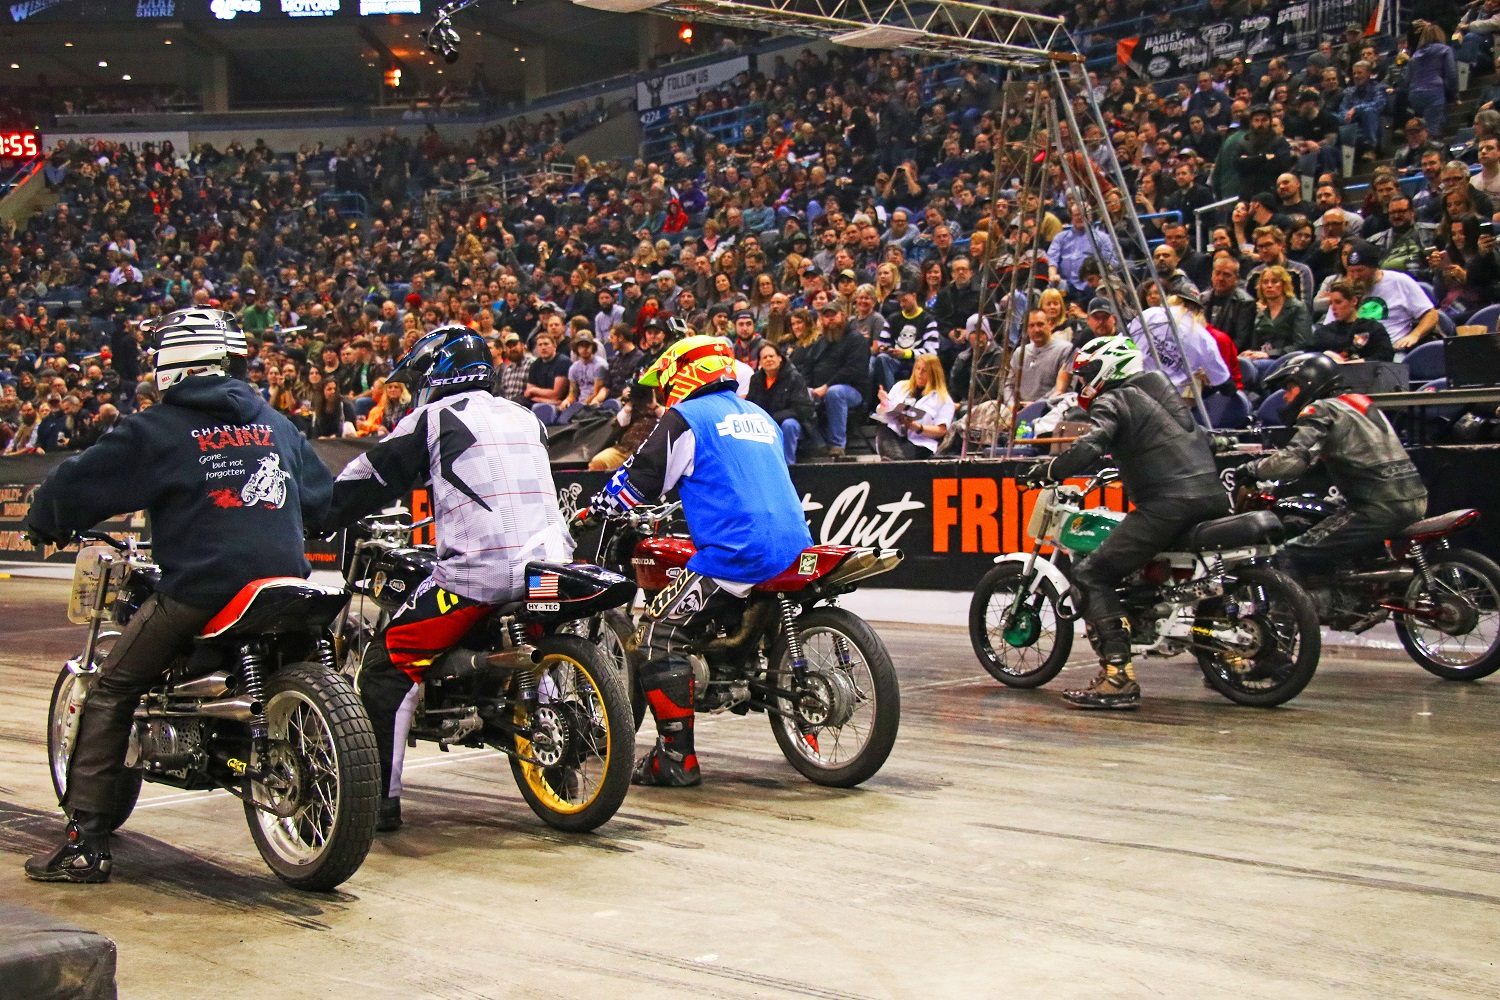 Racers on the track at Mama Tried with hundreds of spectators